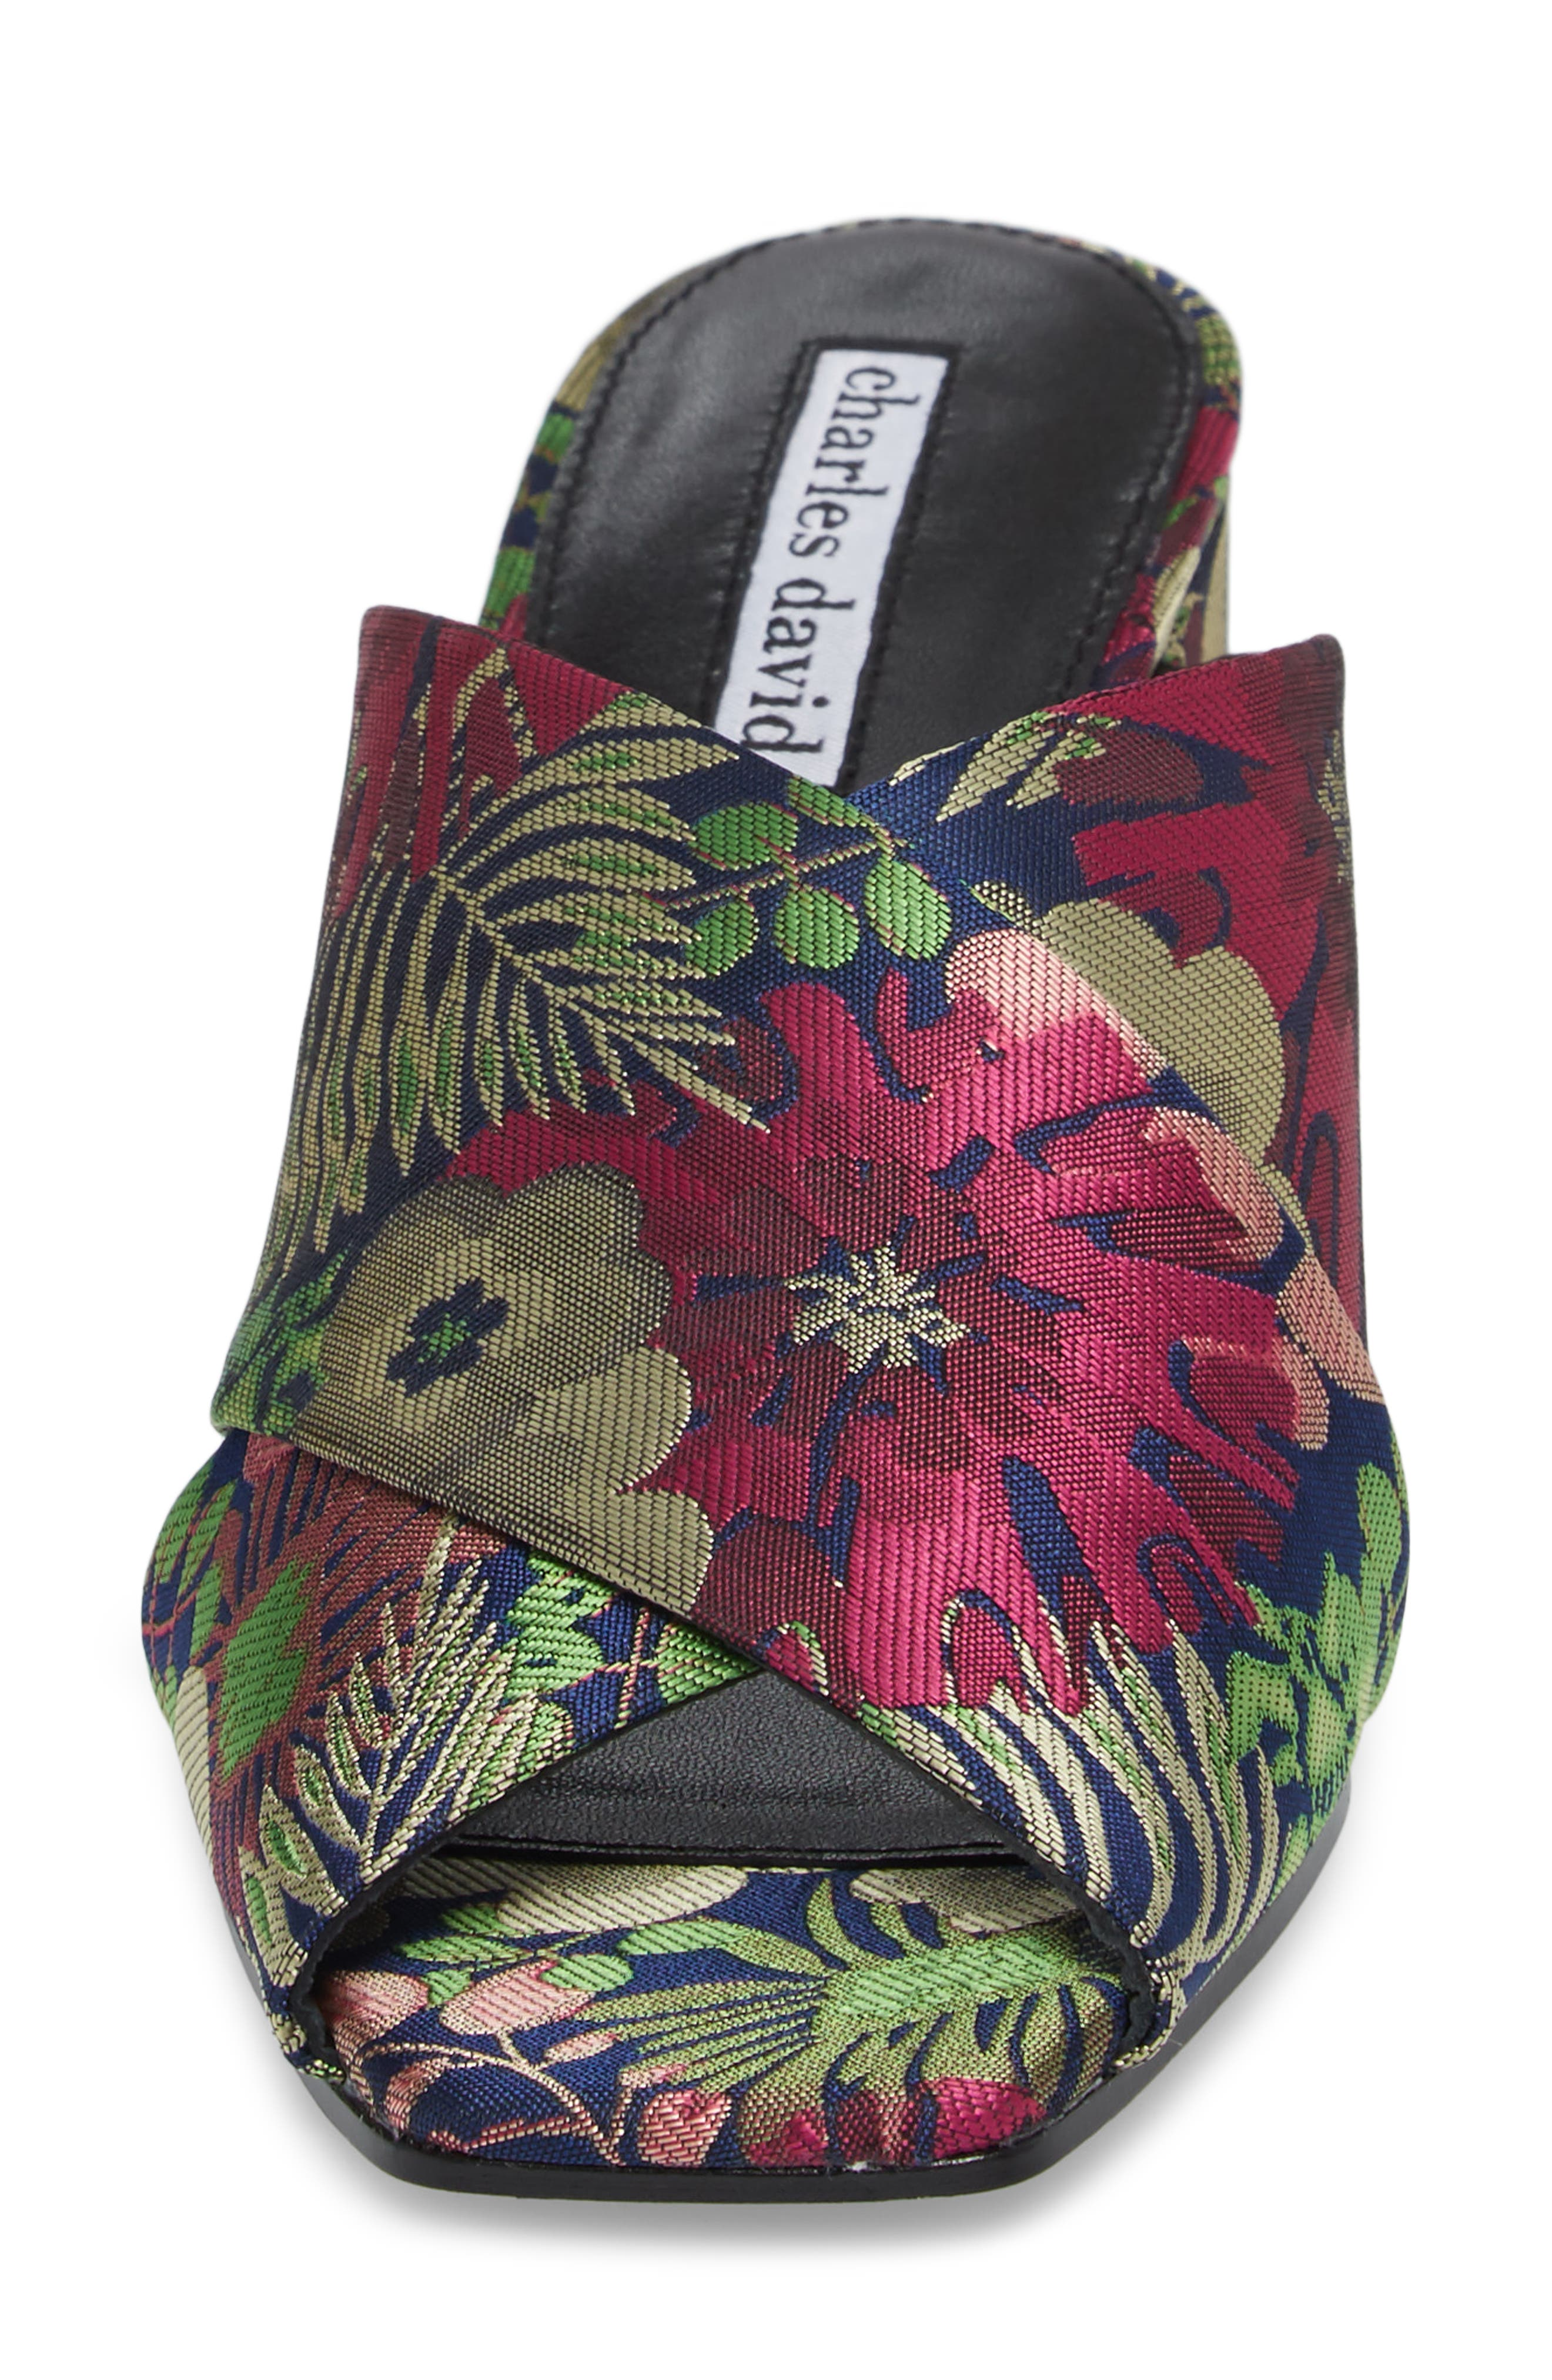 Crissaly Slide Sandal,                             Alternate thumbnail 4, color,                             Green Multi Floral Fabric